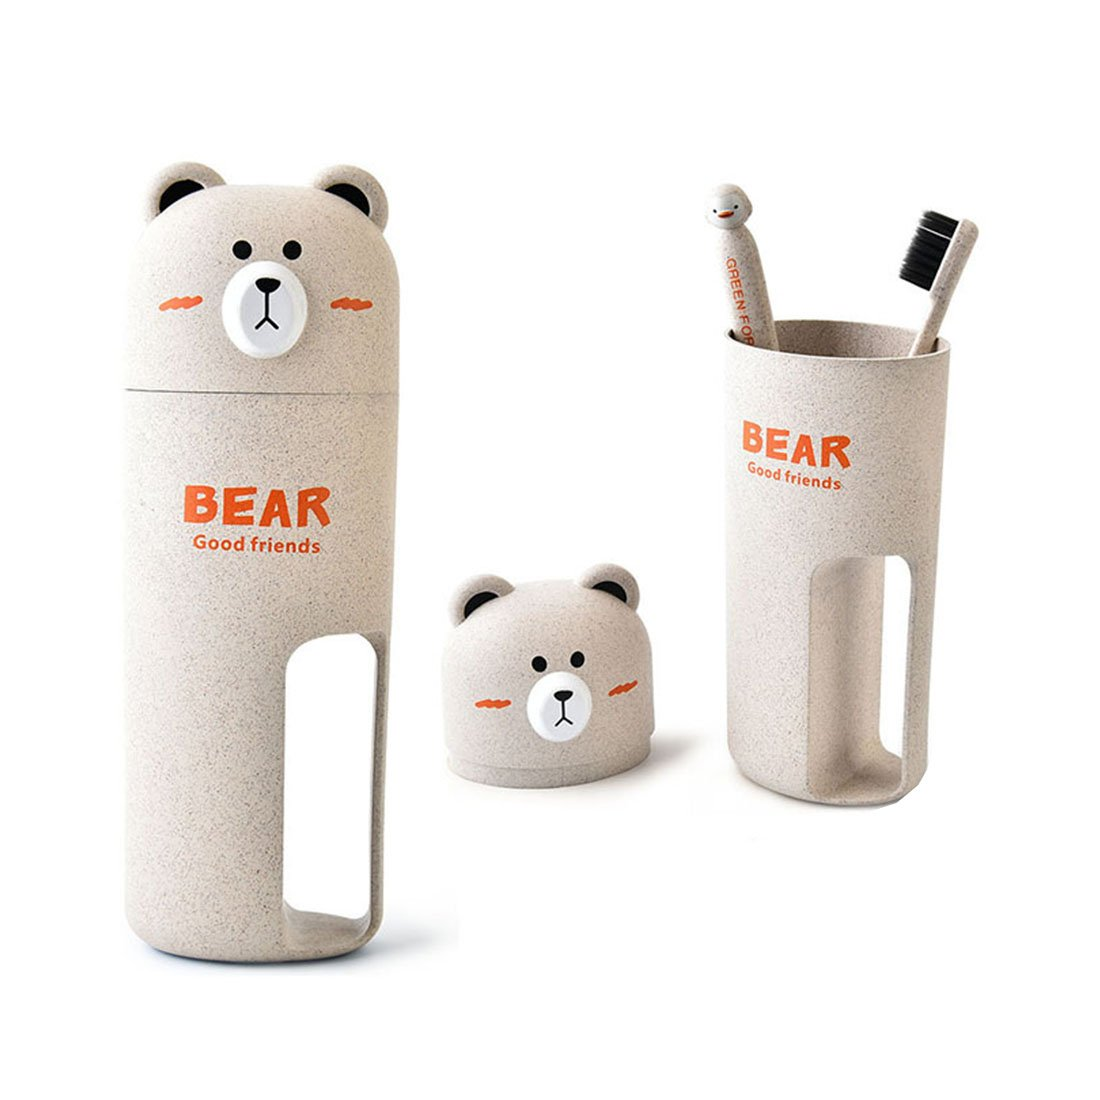 HBOS Wheat Fiber Environmentally-friendly Bear Toiletry Kit for Travel And Toiletry Cup with 2 Toothbrush & Wash Gargle Cup